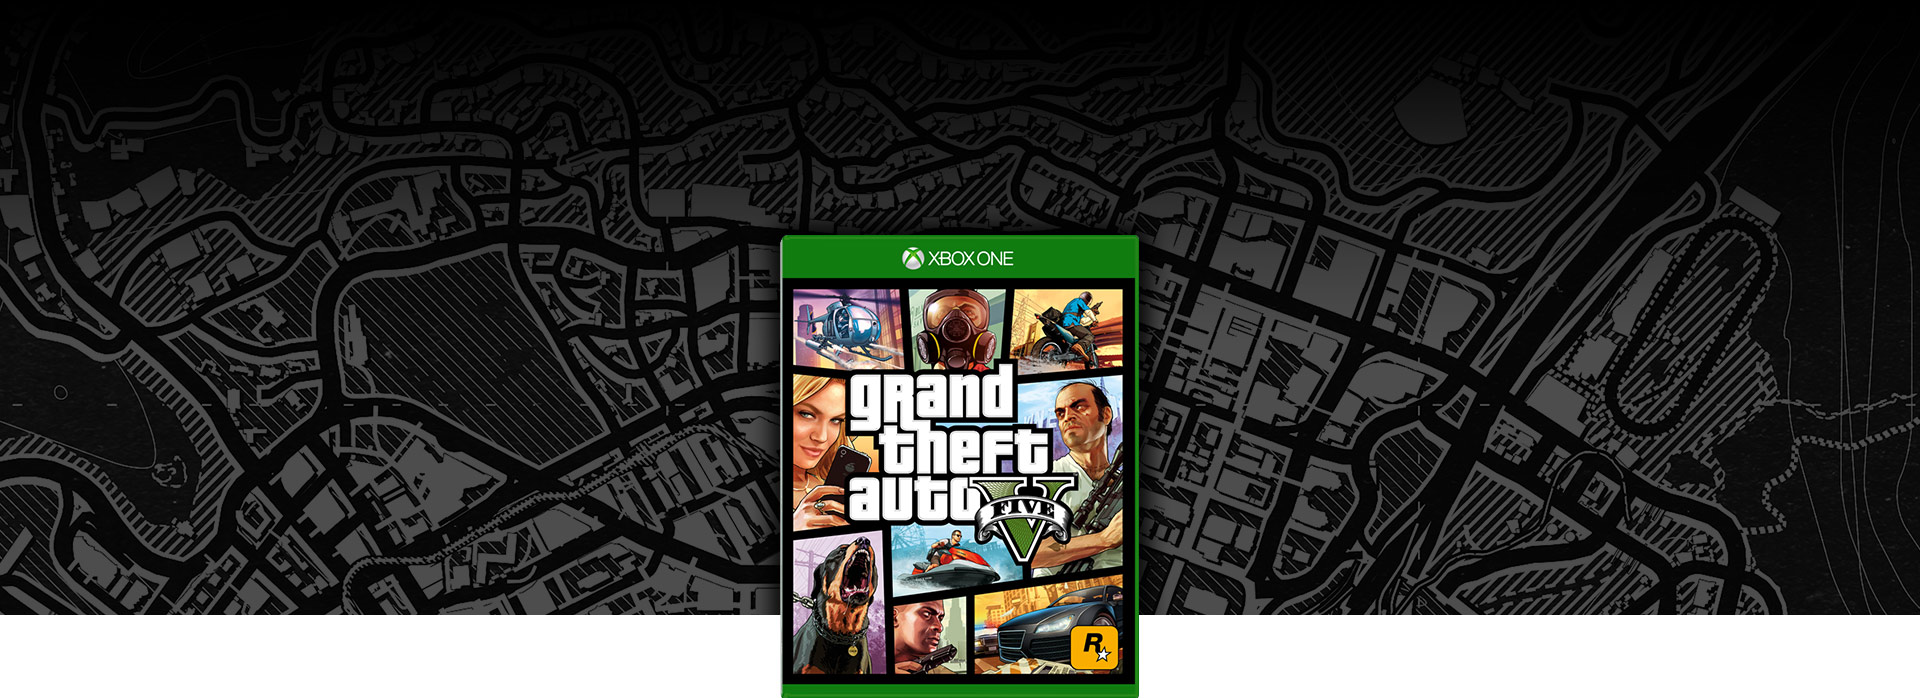 GTA 5 boxshot. Black and white map of Los Santos